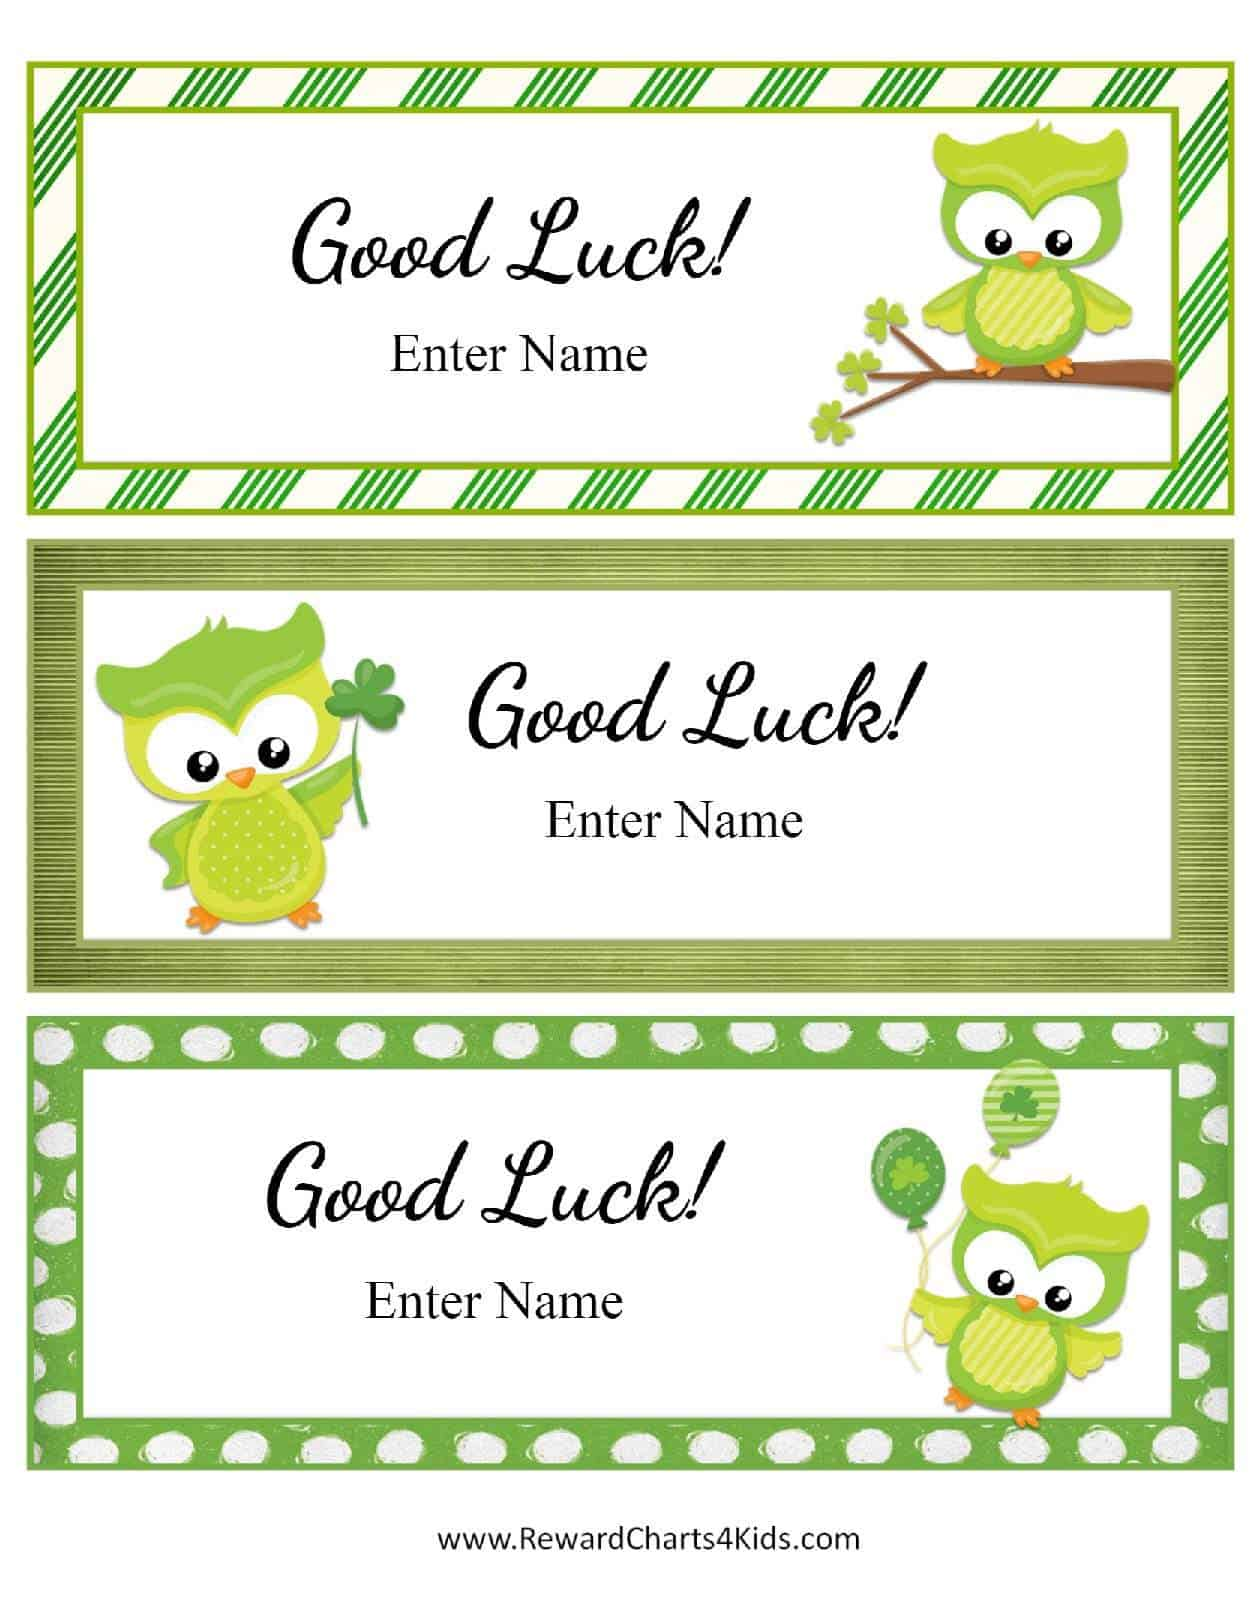 It's just a graphic of Sassy Printable Good Luck Cards